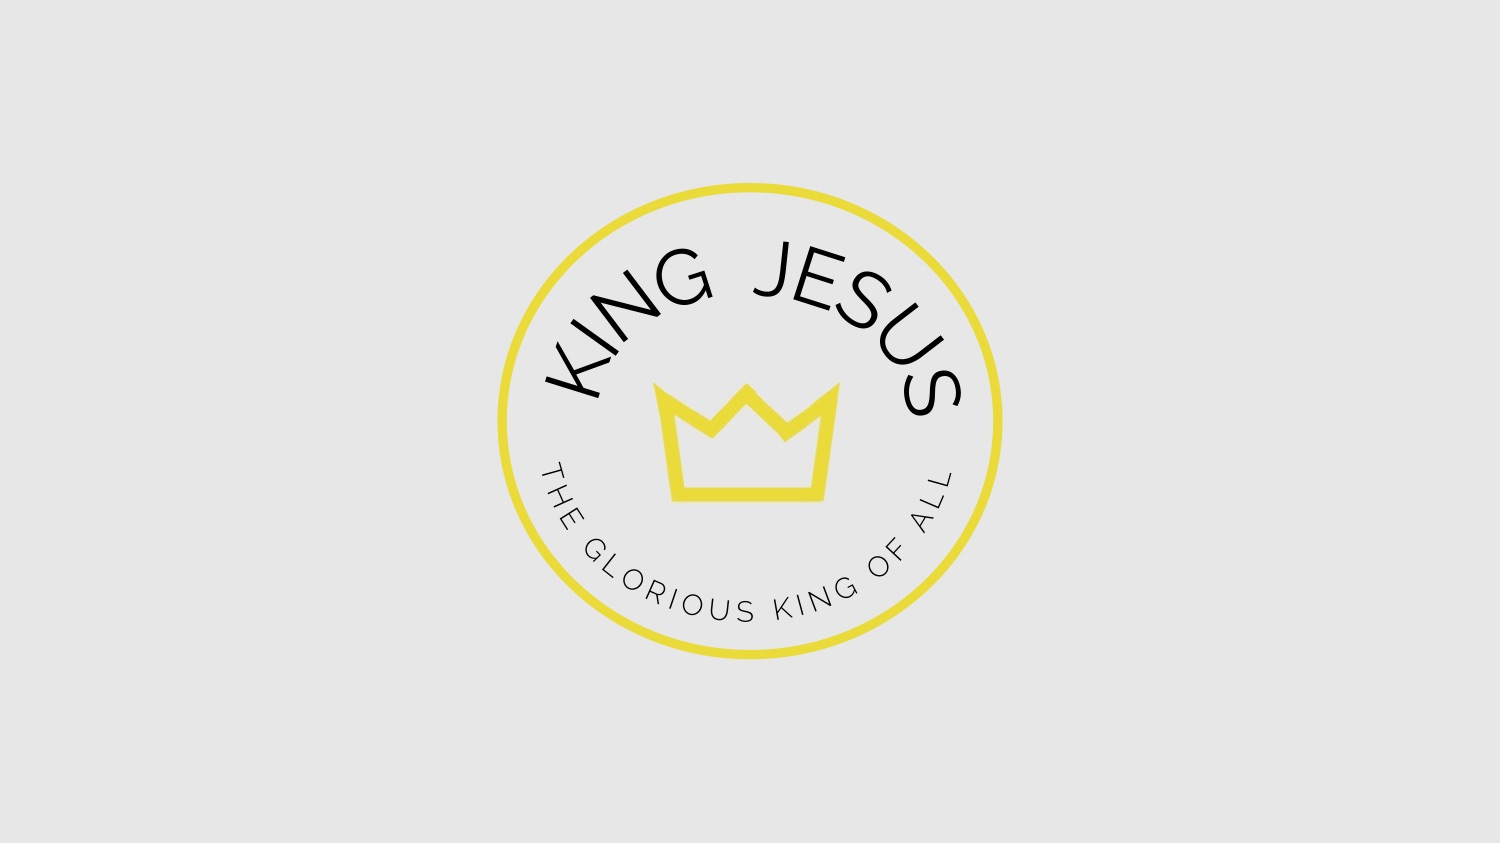 9.20.20 The Glorious King of All